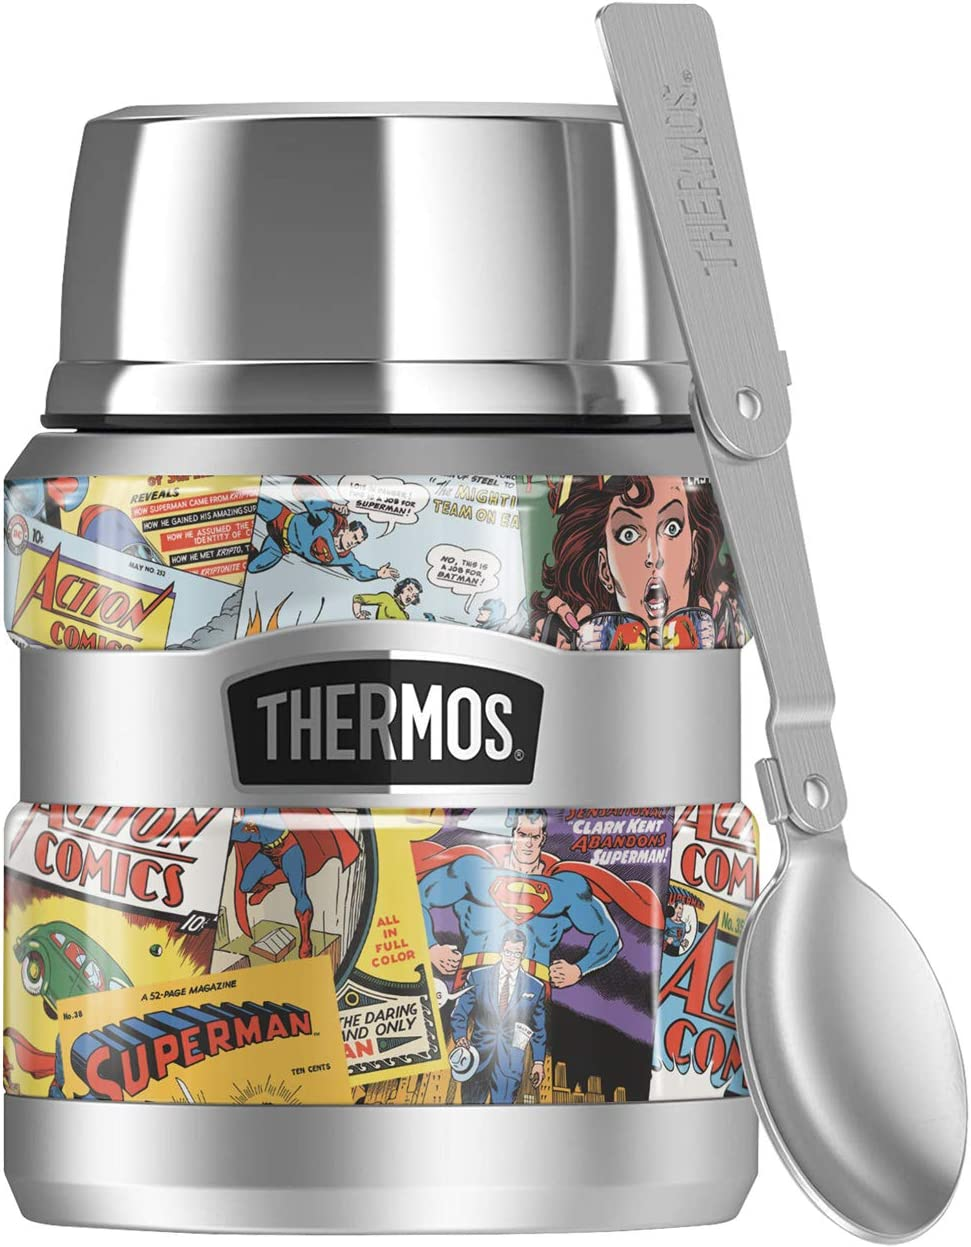 Superman Comic Covers, THERMOS STAINLESS KING Stainless Steel Food Jar with Folding Spoon, Vacuum insulated & Double Wall, 16oz